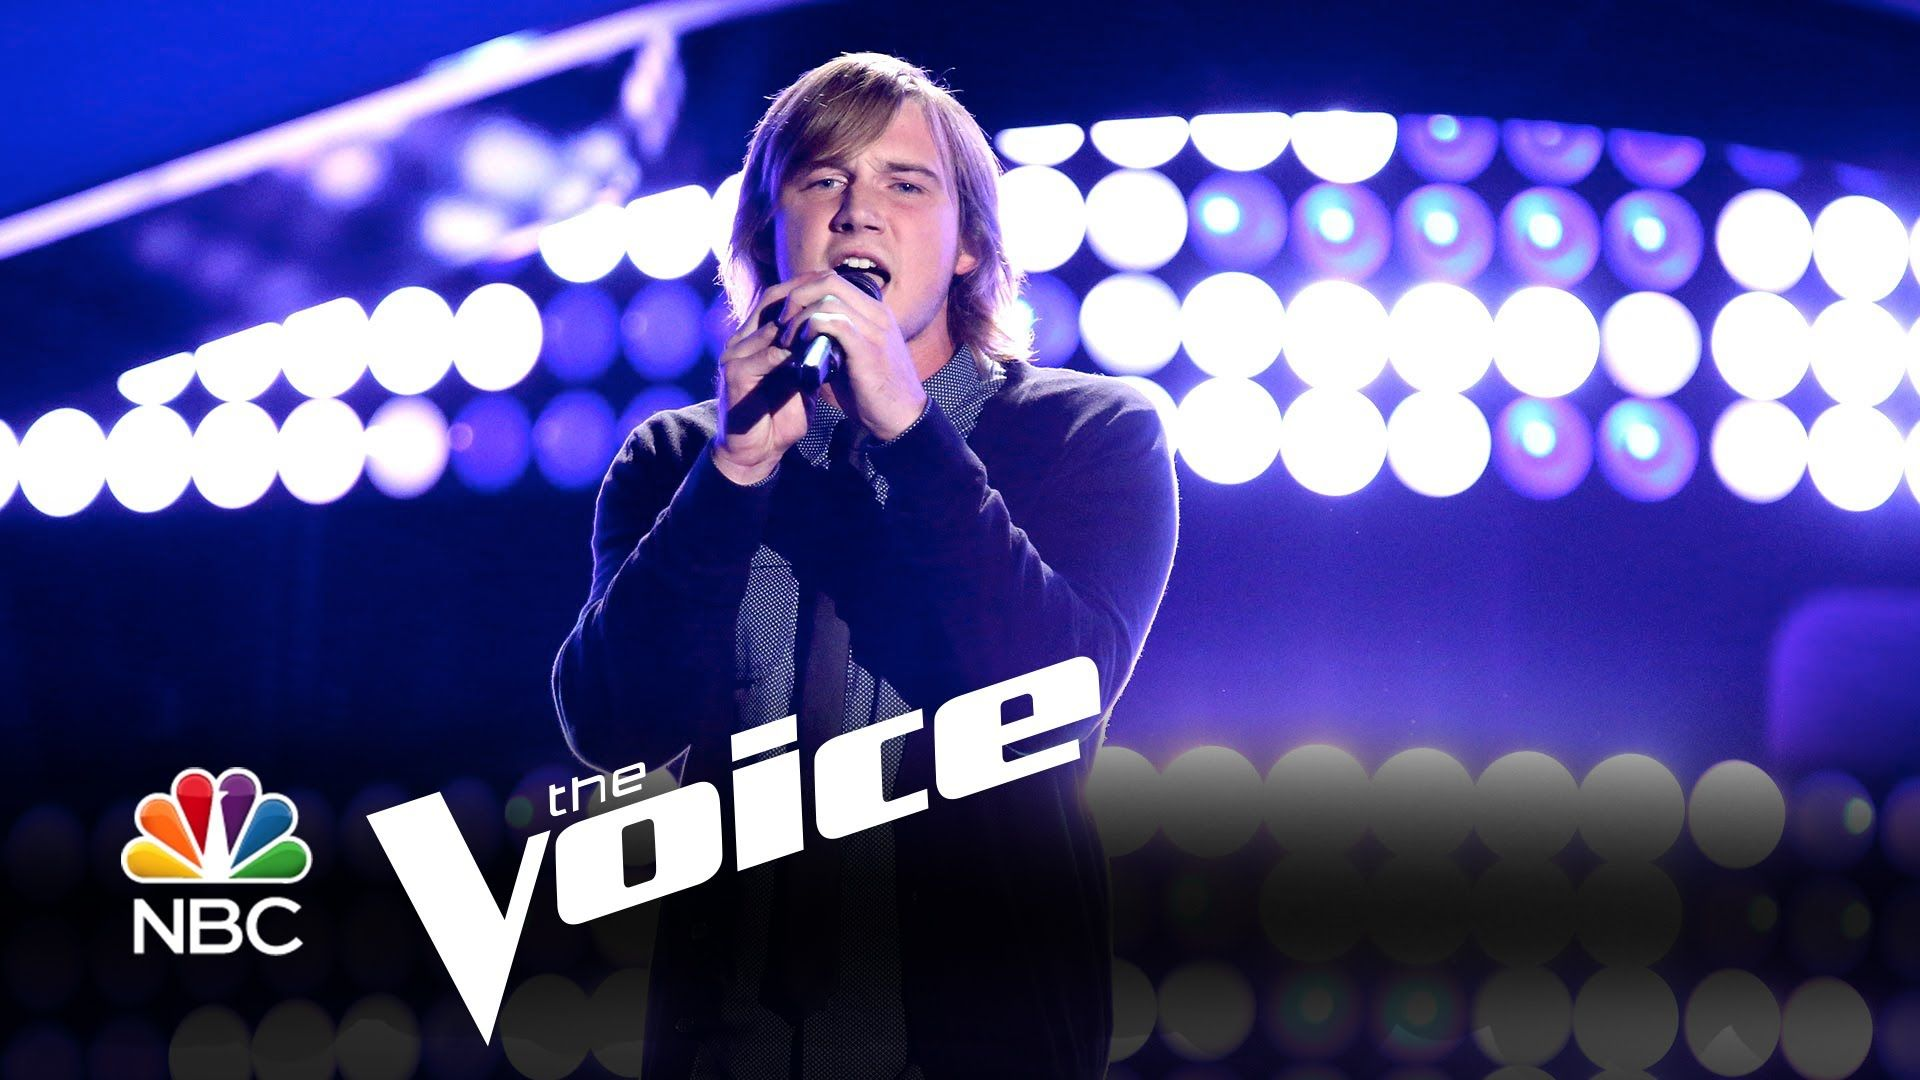 Morgan Wallen Audition Collide The Voice Highlight That Rasp That Voice Unf The Voice Reality Tv Shows Music Covers